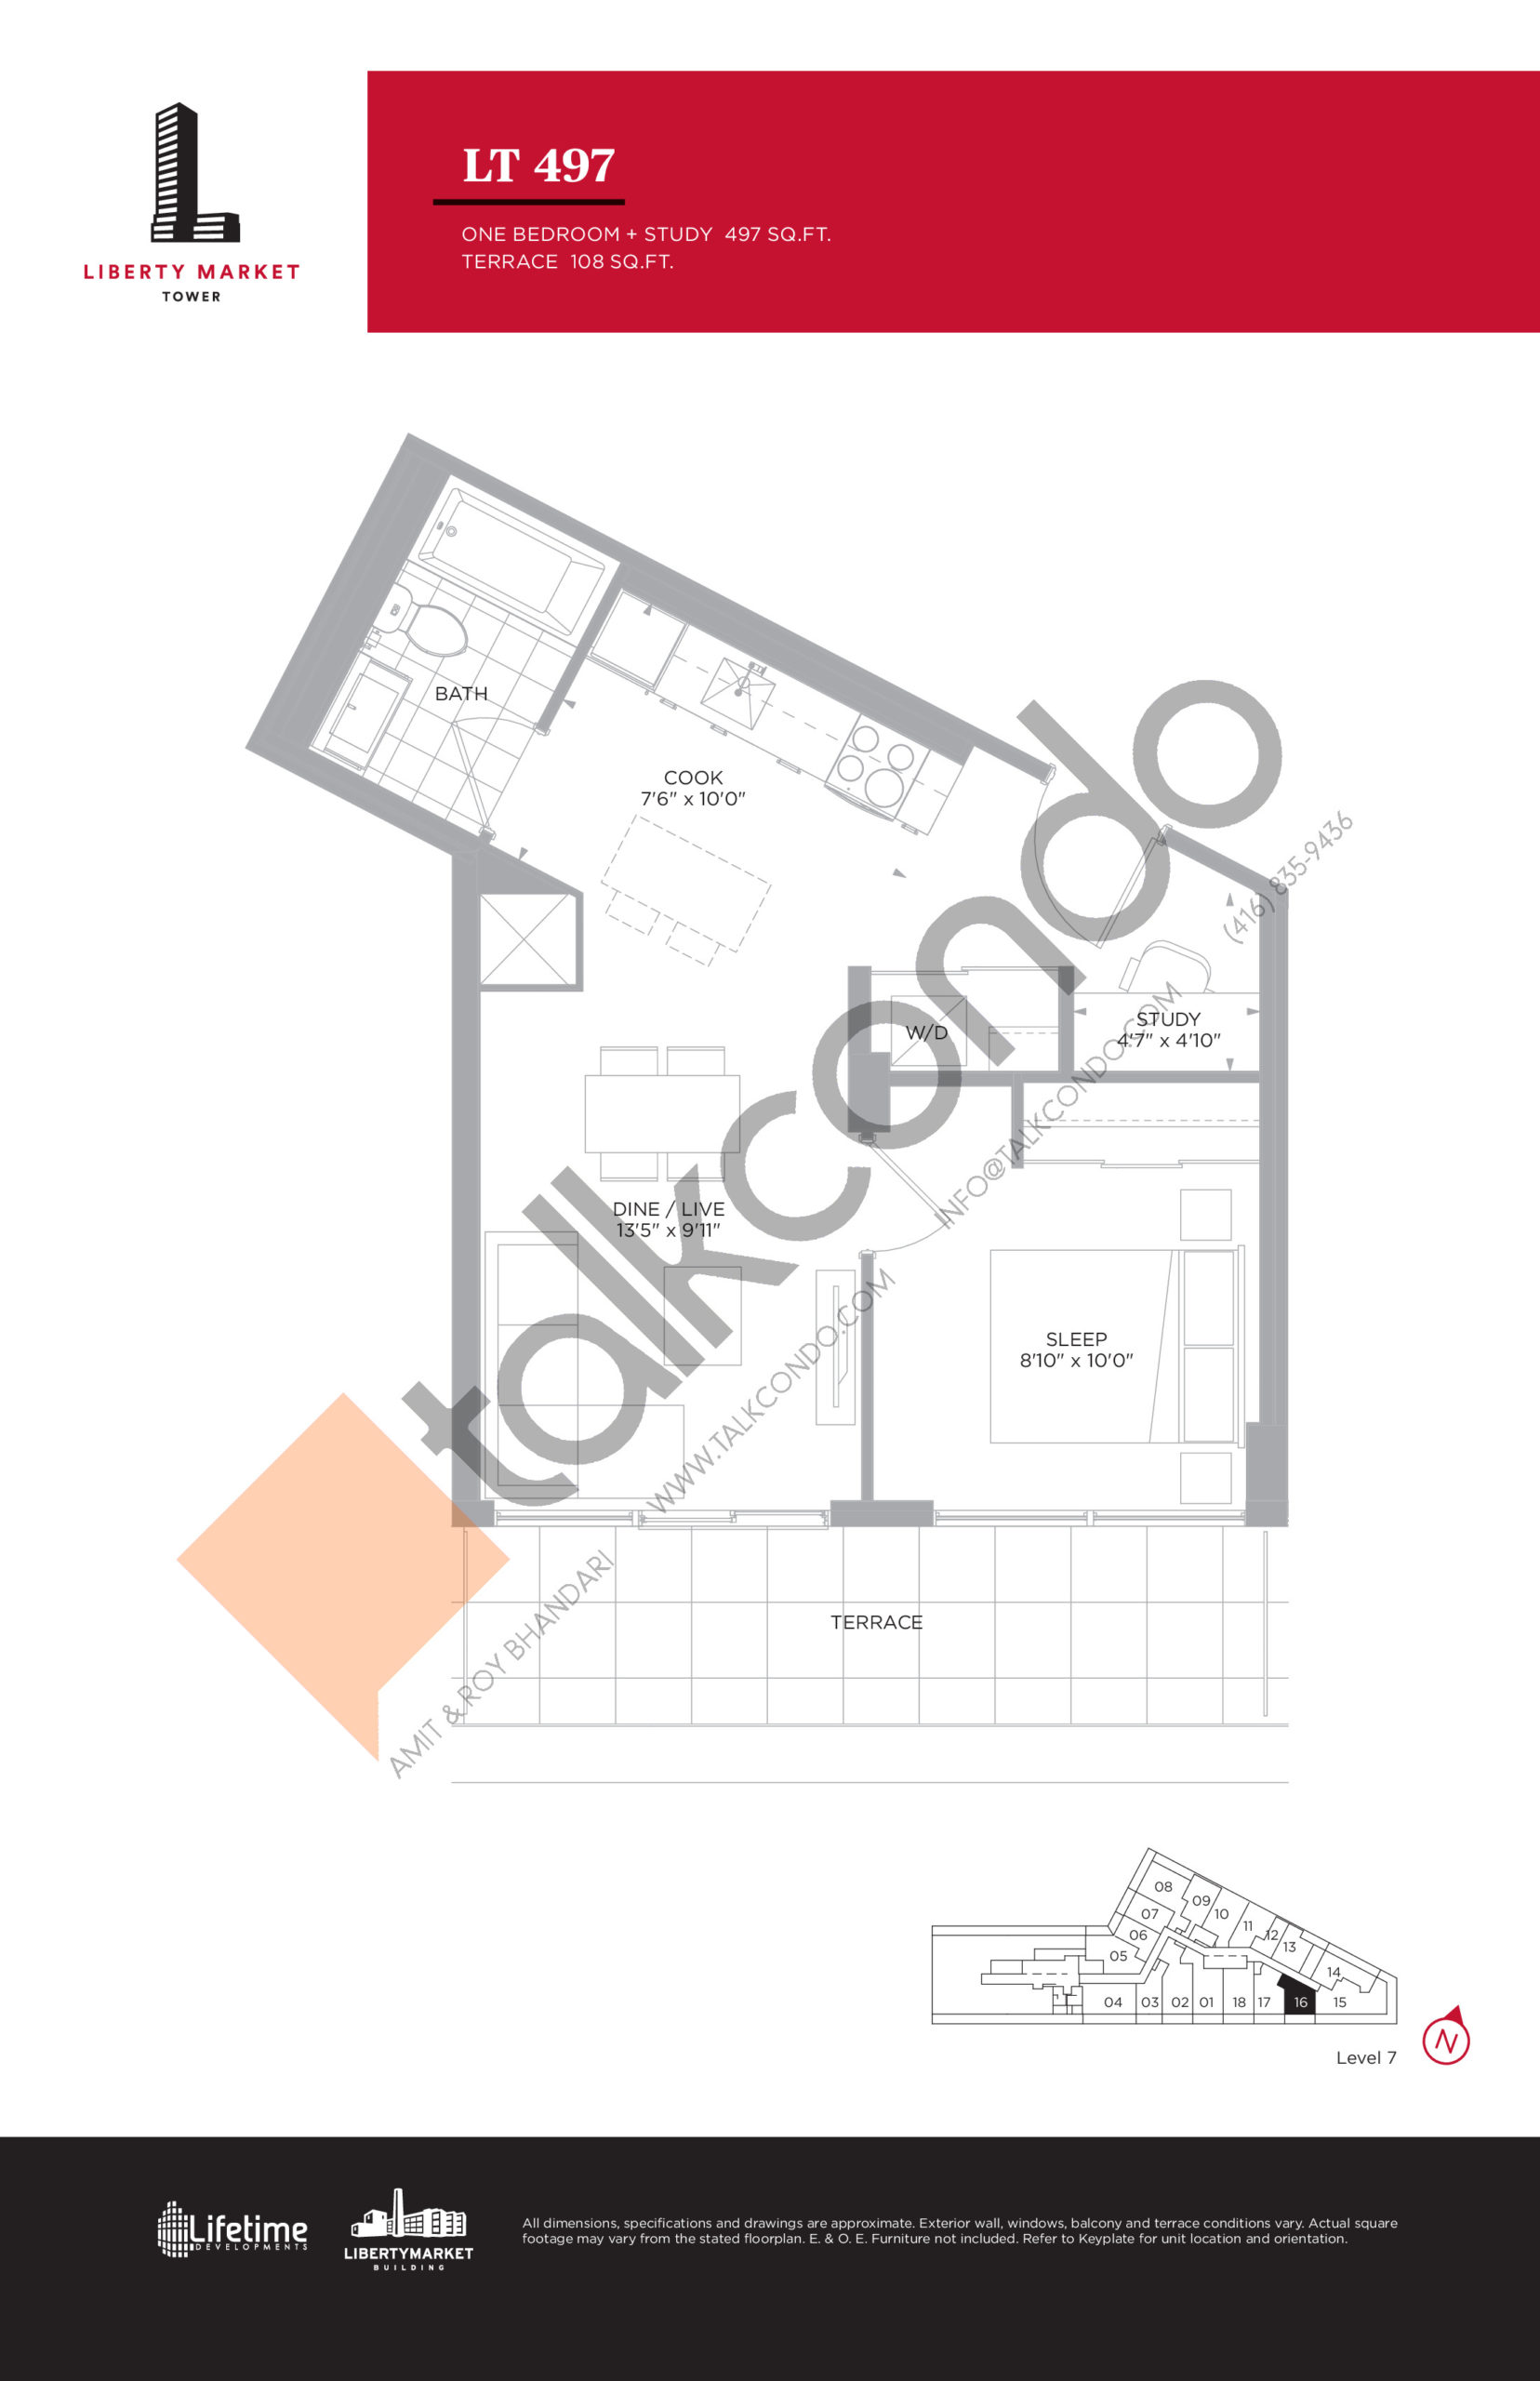 LT 497 - Terrace Collection Floor Plan at Liberty Market Tower Condos - 497 sq.ft